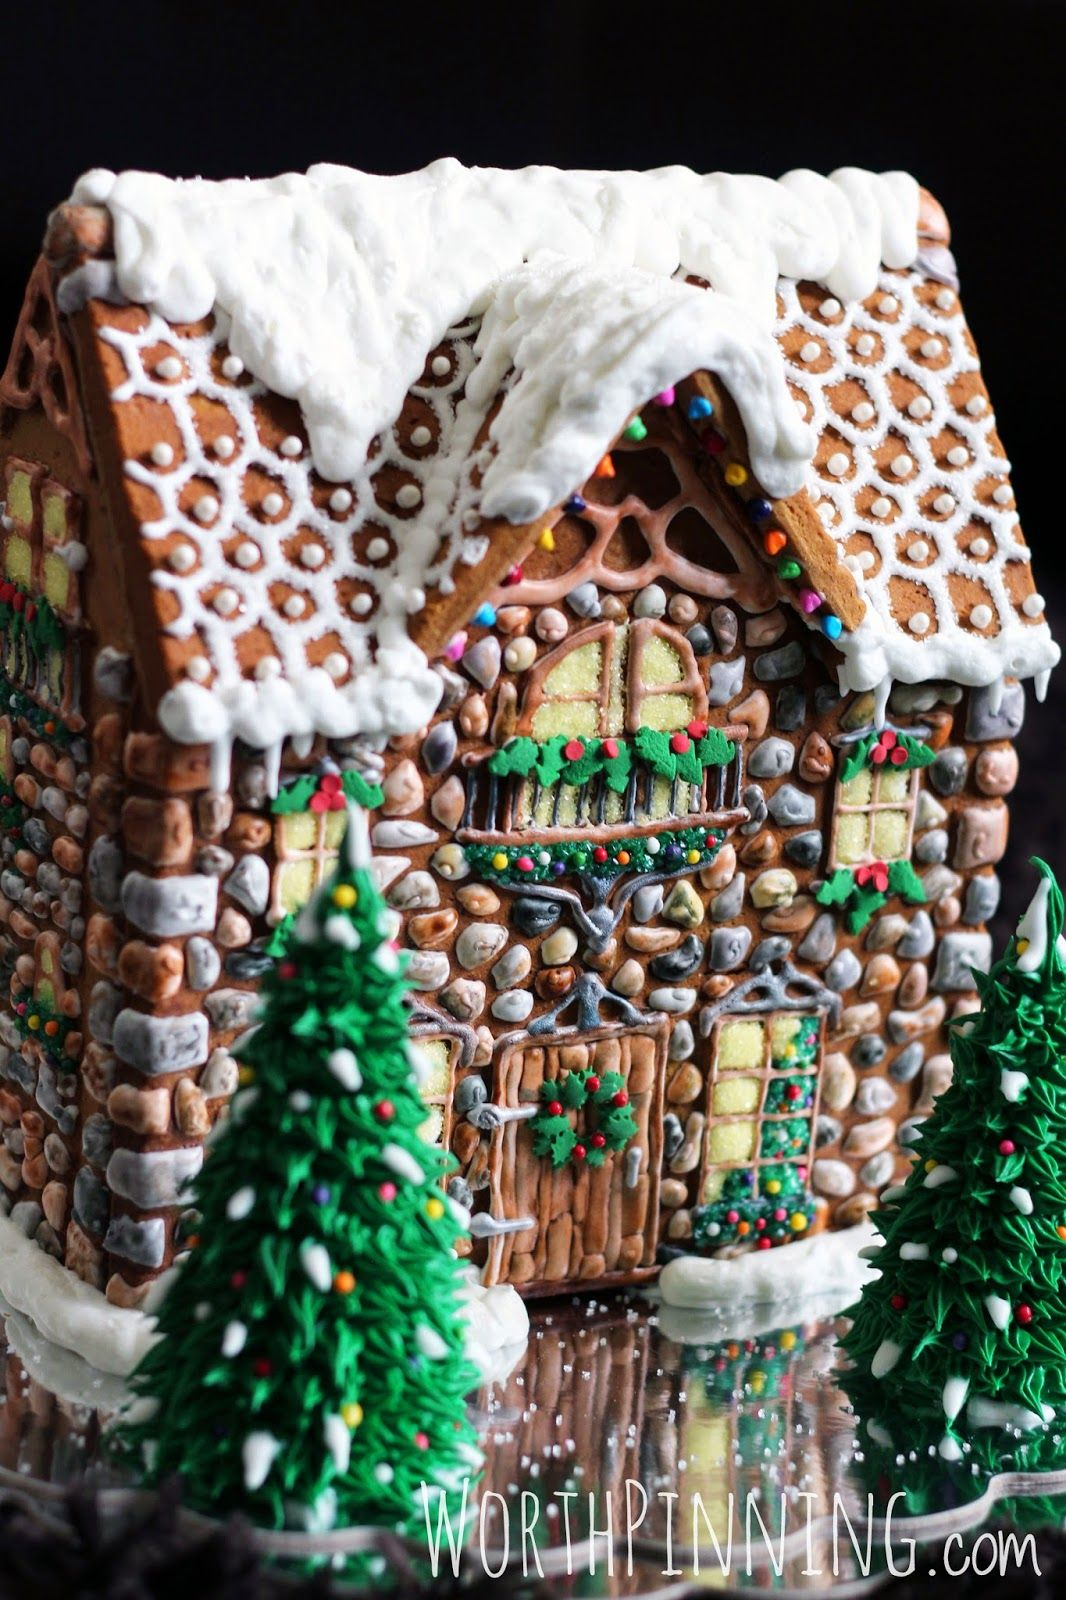 Christmas Gingerbread House Decorations.38 Best Gingerbread House Ideas And Pictures How To Make